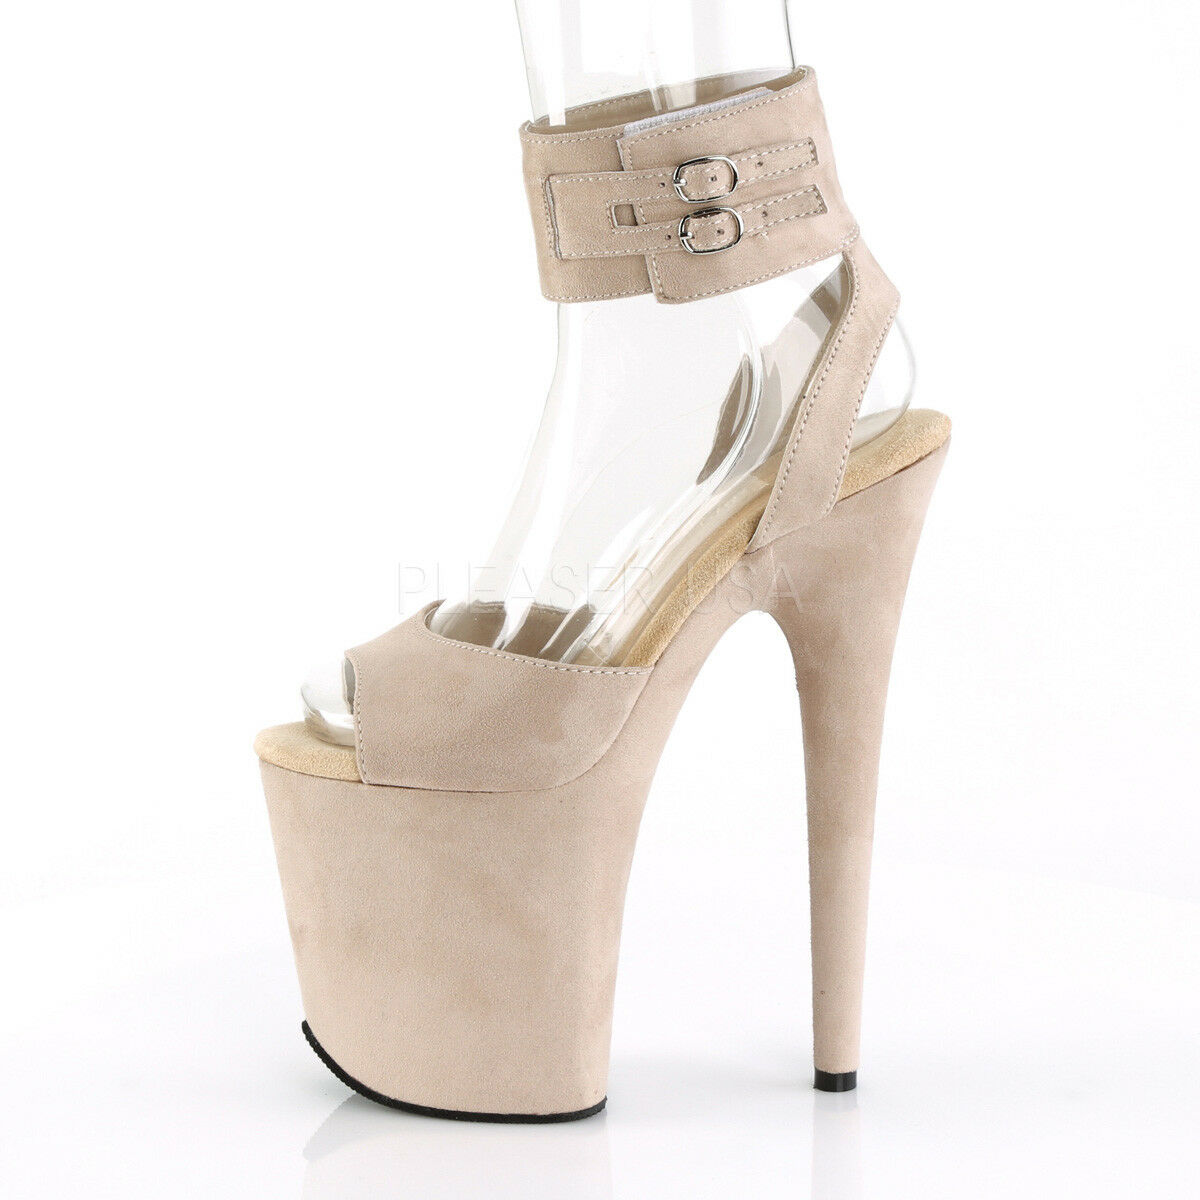 Flamingo 891 Nude Vegan Suede 8 8 8  High Heel Platform schuhe With Ankle Cuff 5-12 879f8c